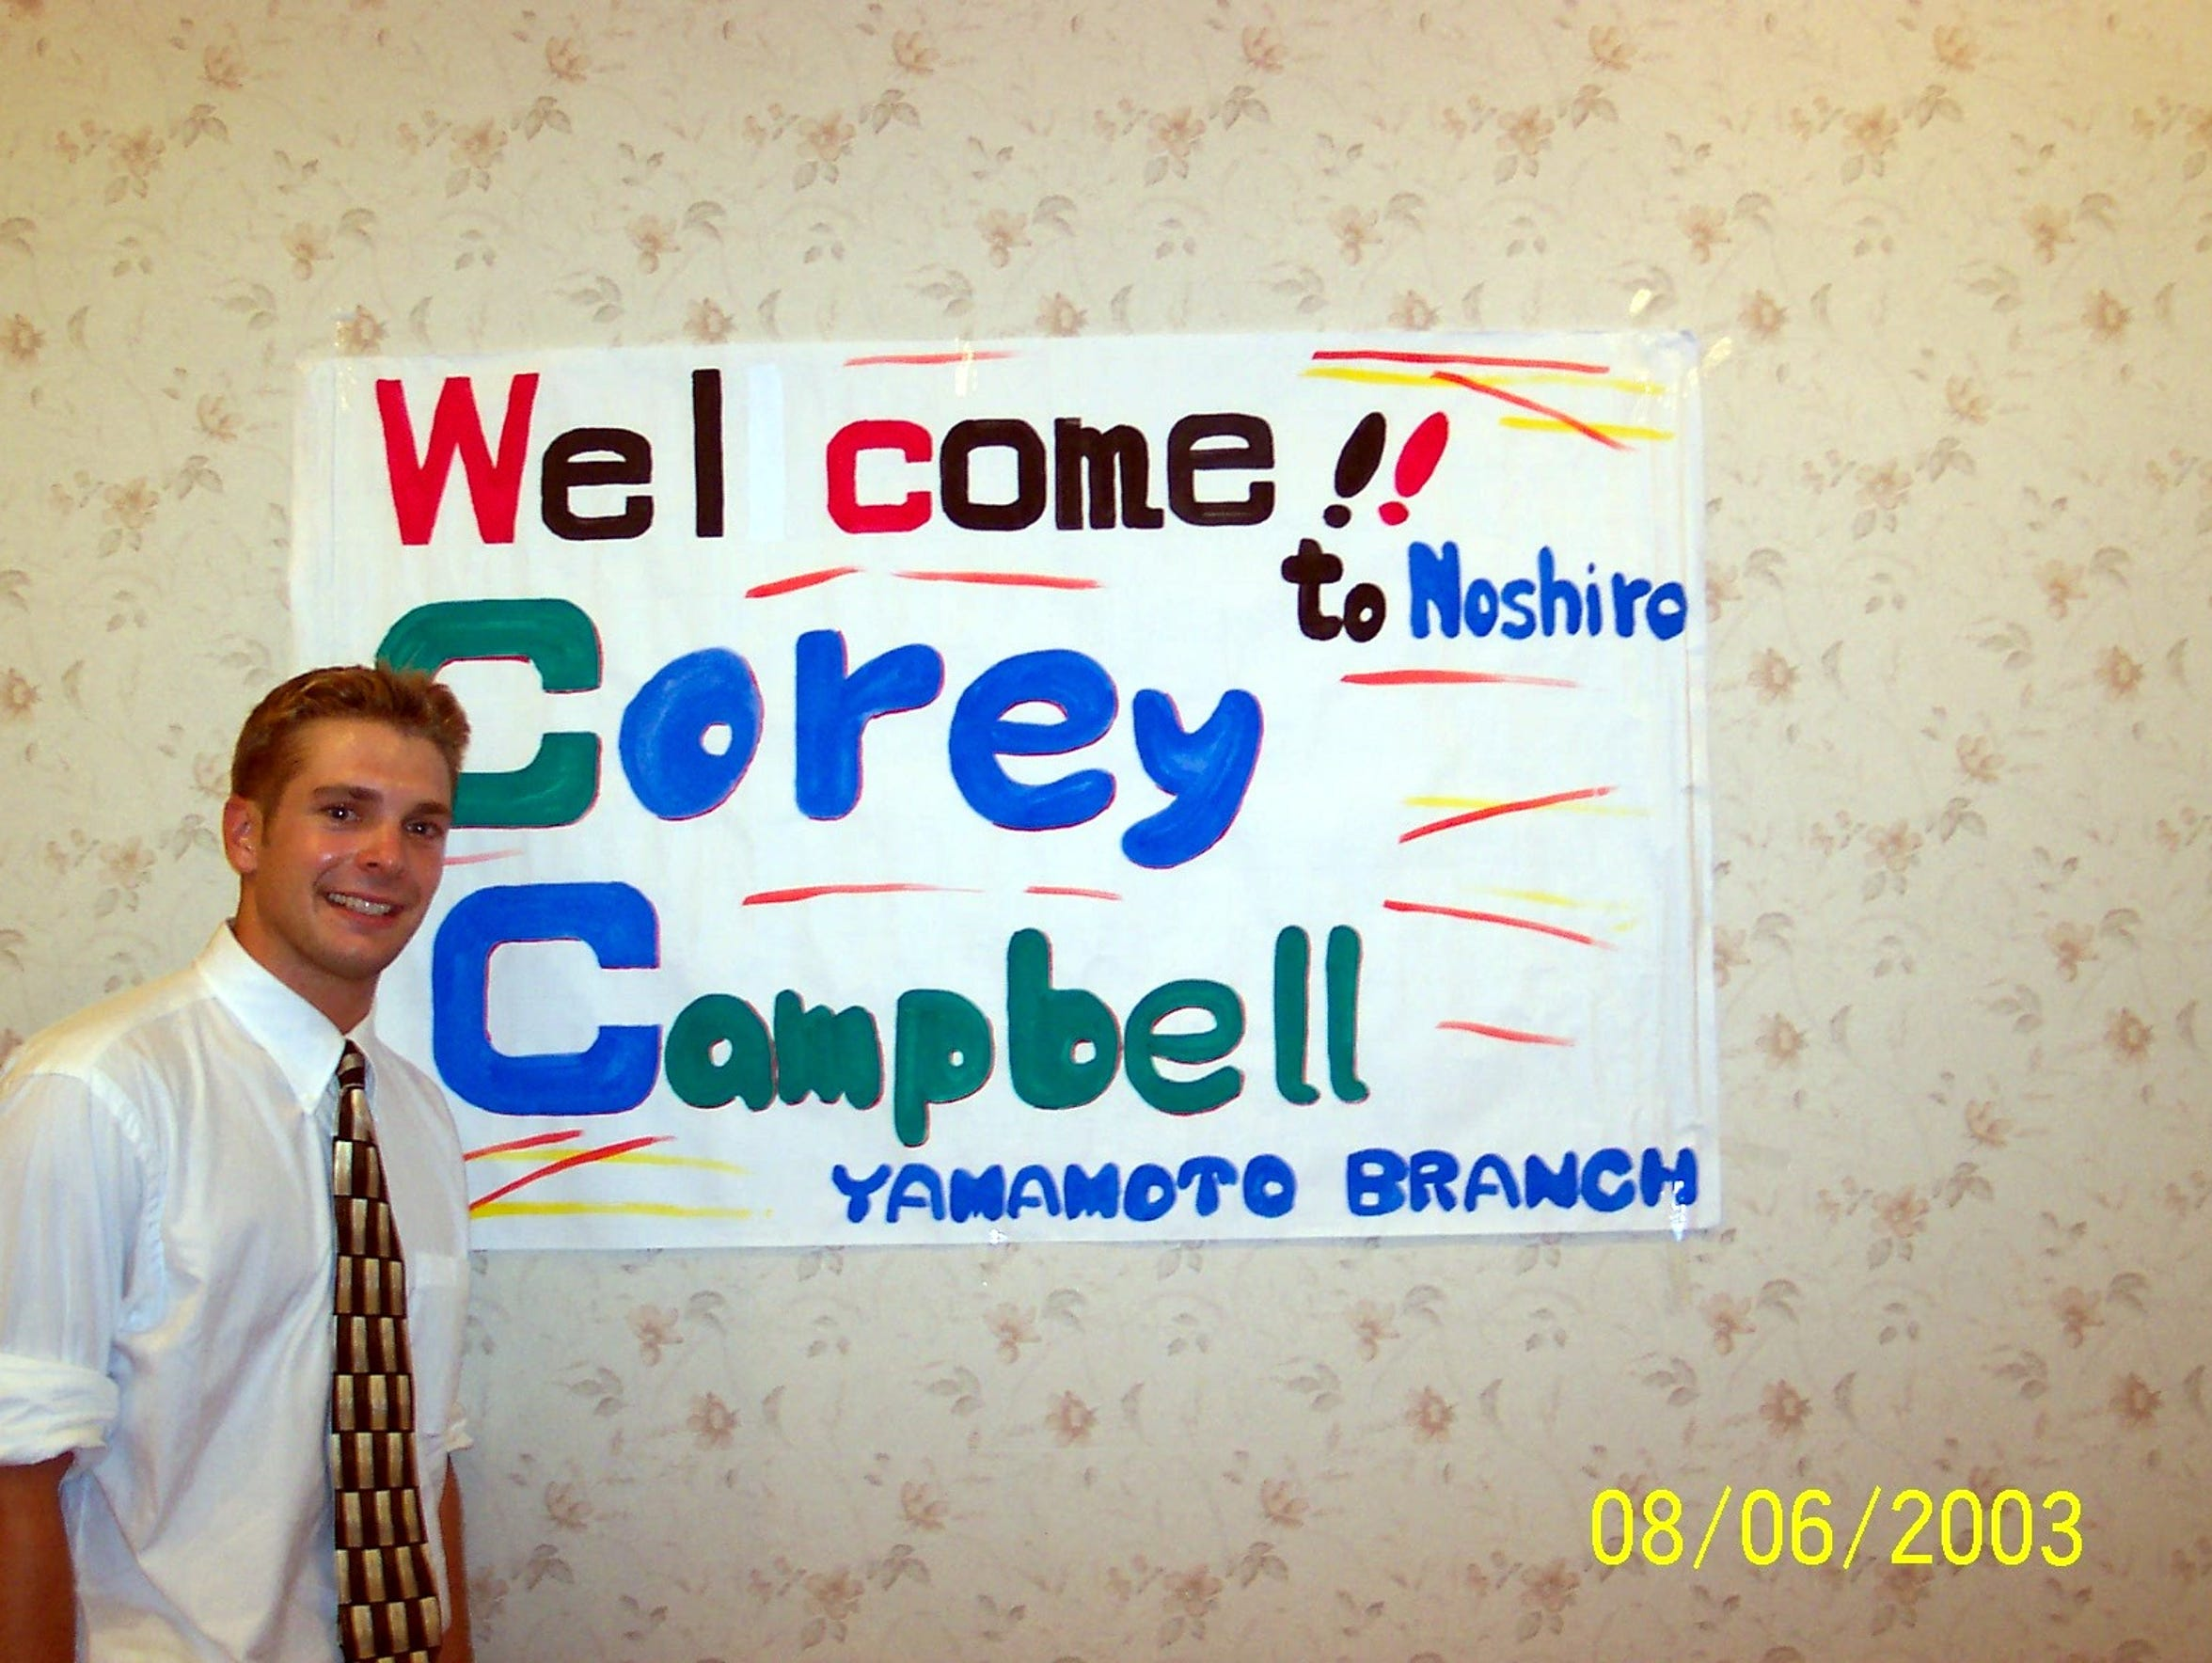 Corey Campbell stands next to sign welcoming him to